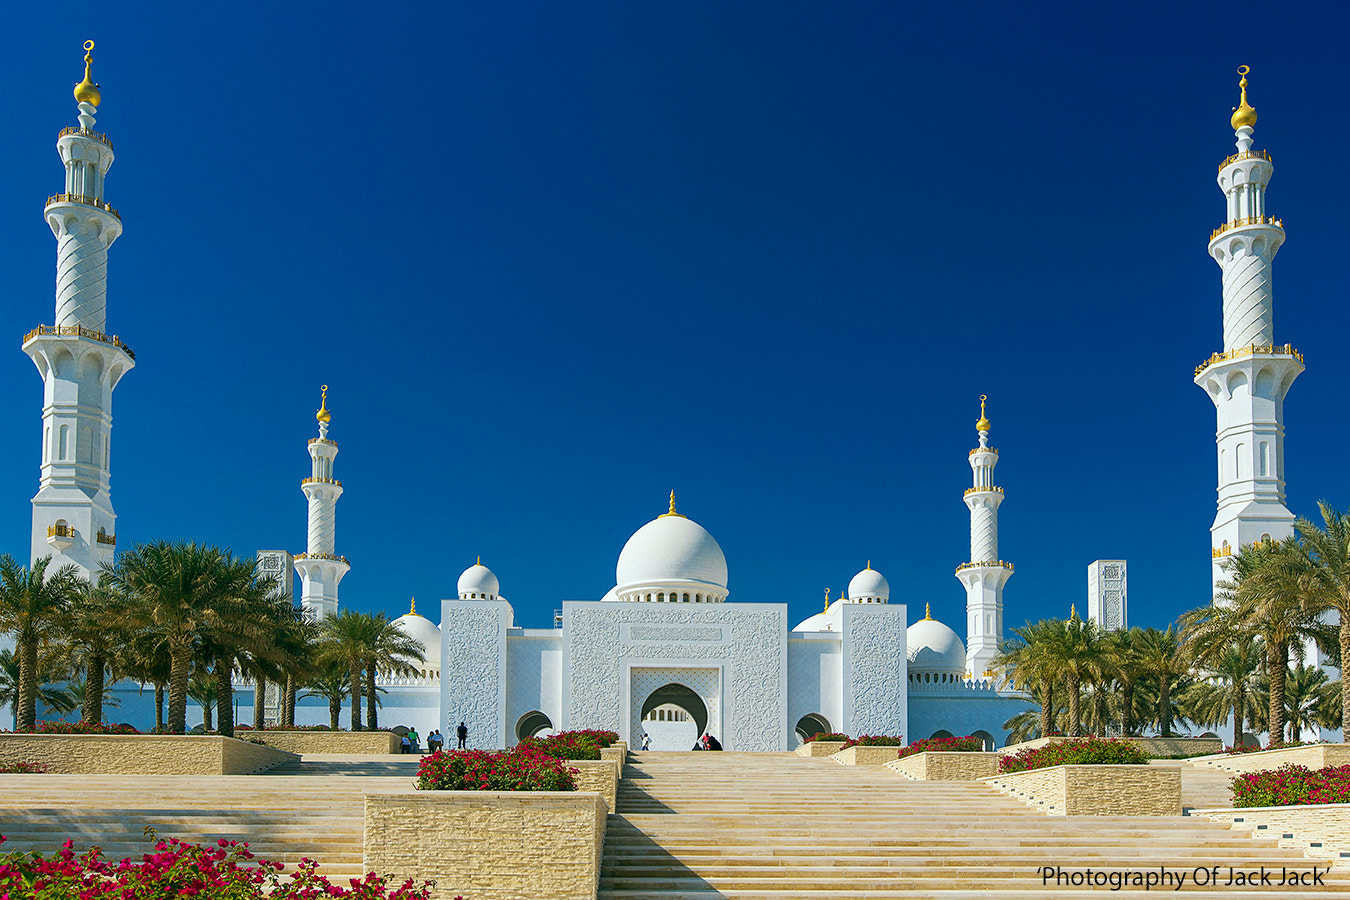 Photograph 'Sheikh Zayed Grand Mosque' by HENDRIK PRIYANTO on 500px